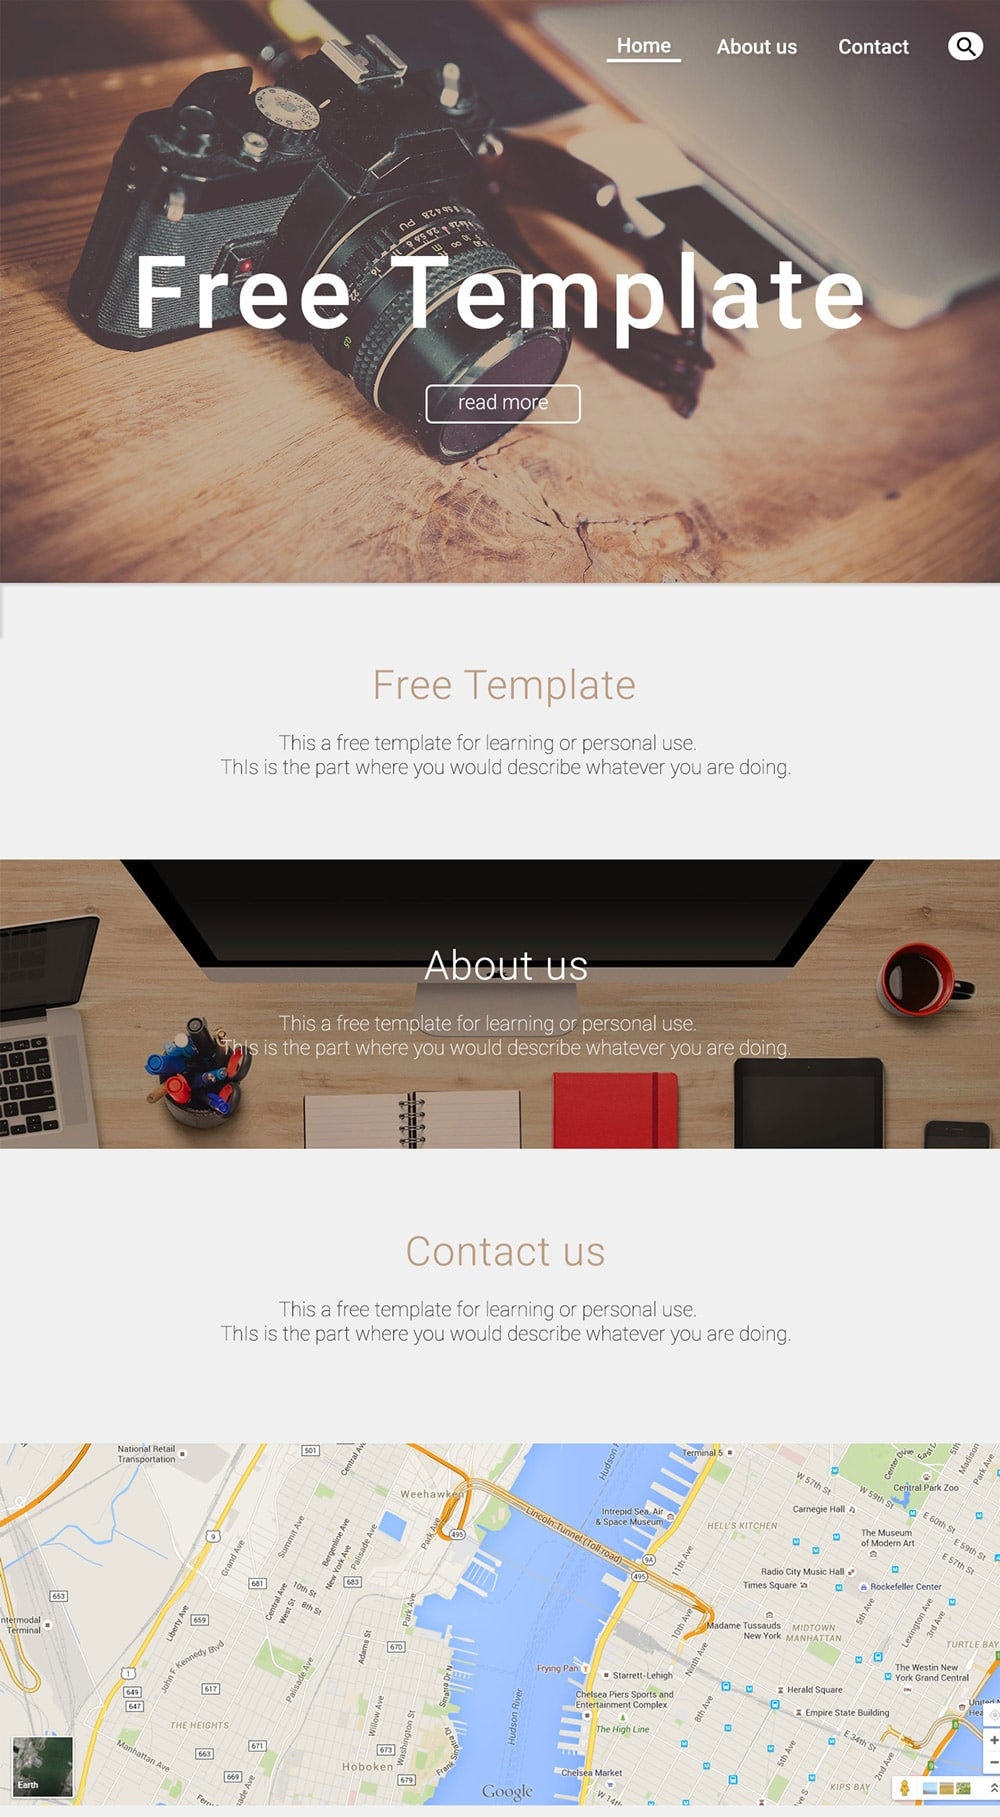 Magnificent 10 Envelope Template Illustrator Small 10 Steps Writing Resume Solid 100 Day Glasses Template 1096 Form Template Youthful 15 Year Old First Resume White2 Column Css Template Free Portfolio Website Templates (PSD) » CSS Author